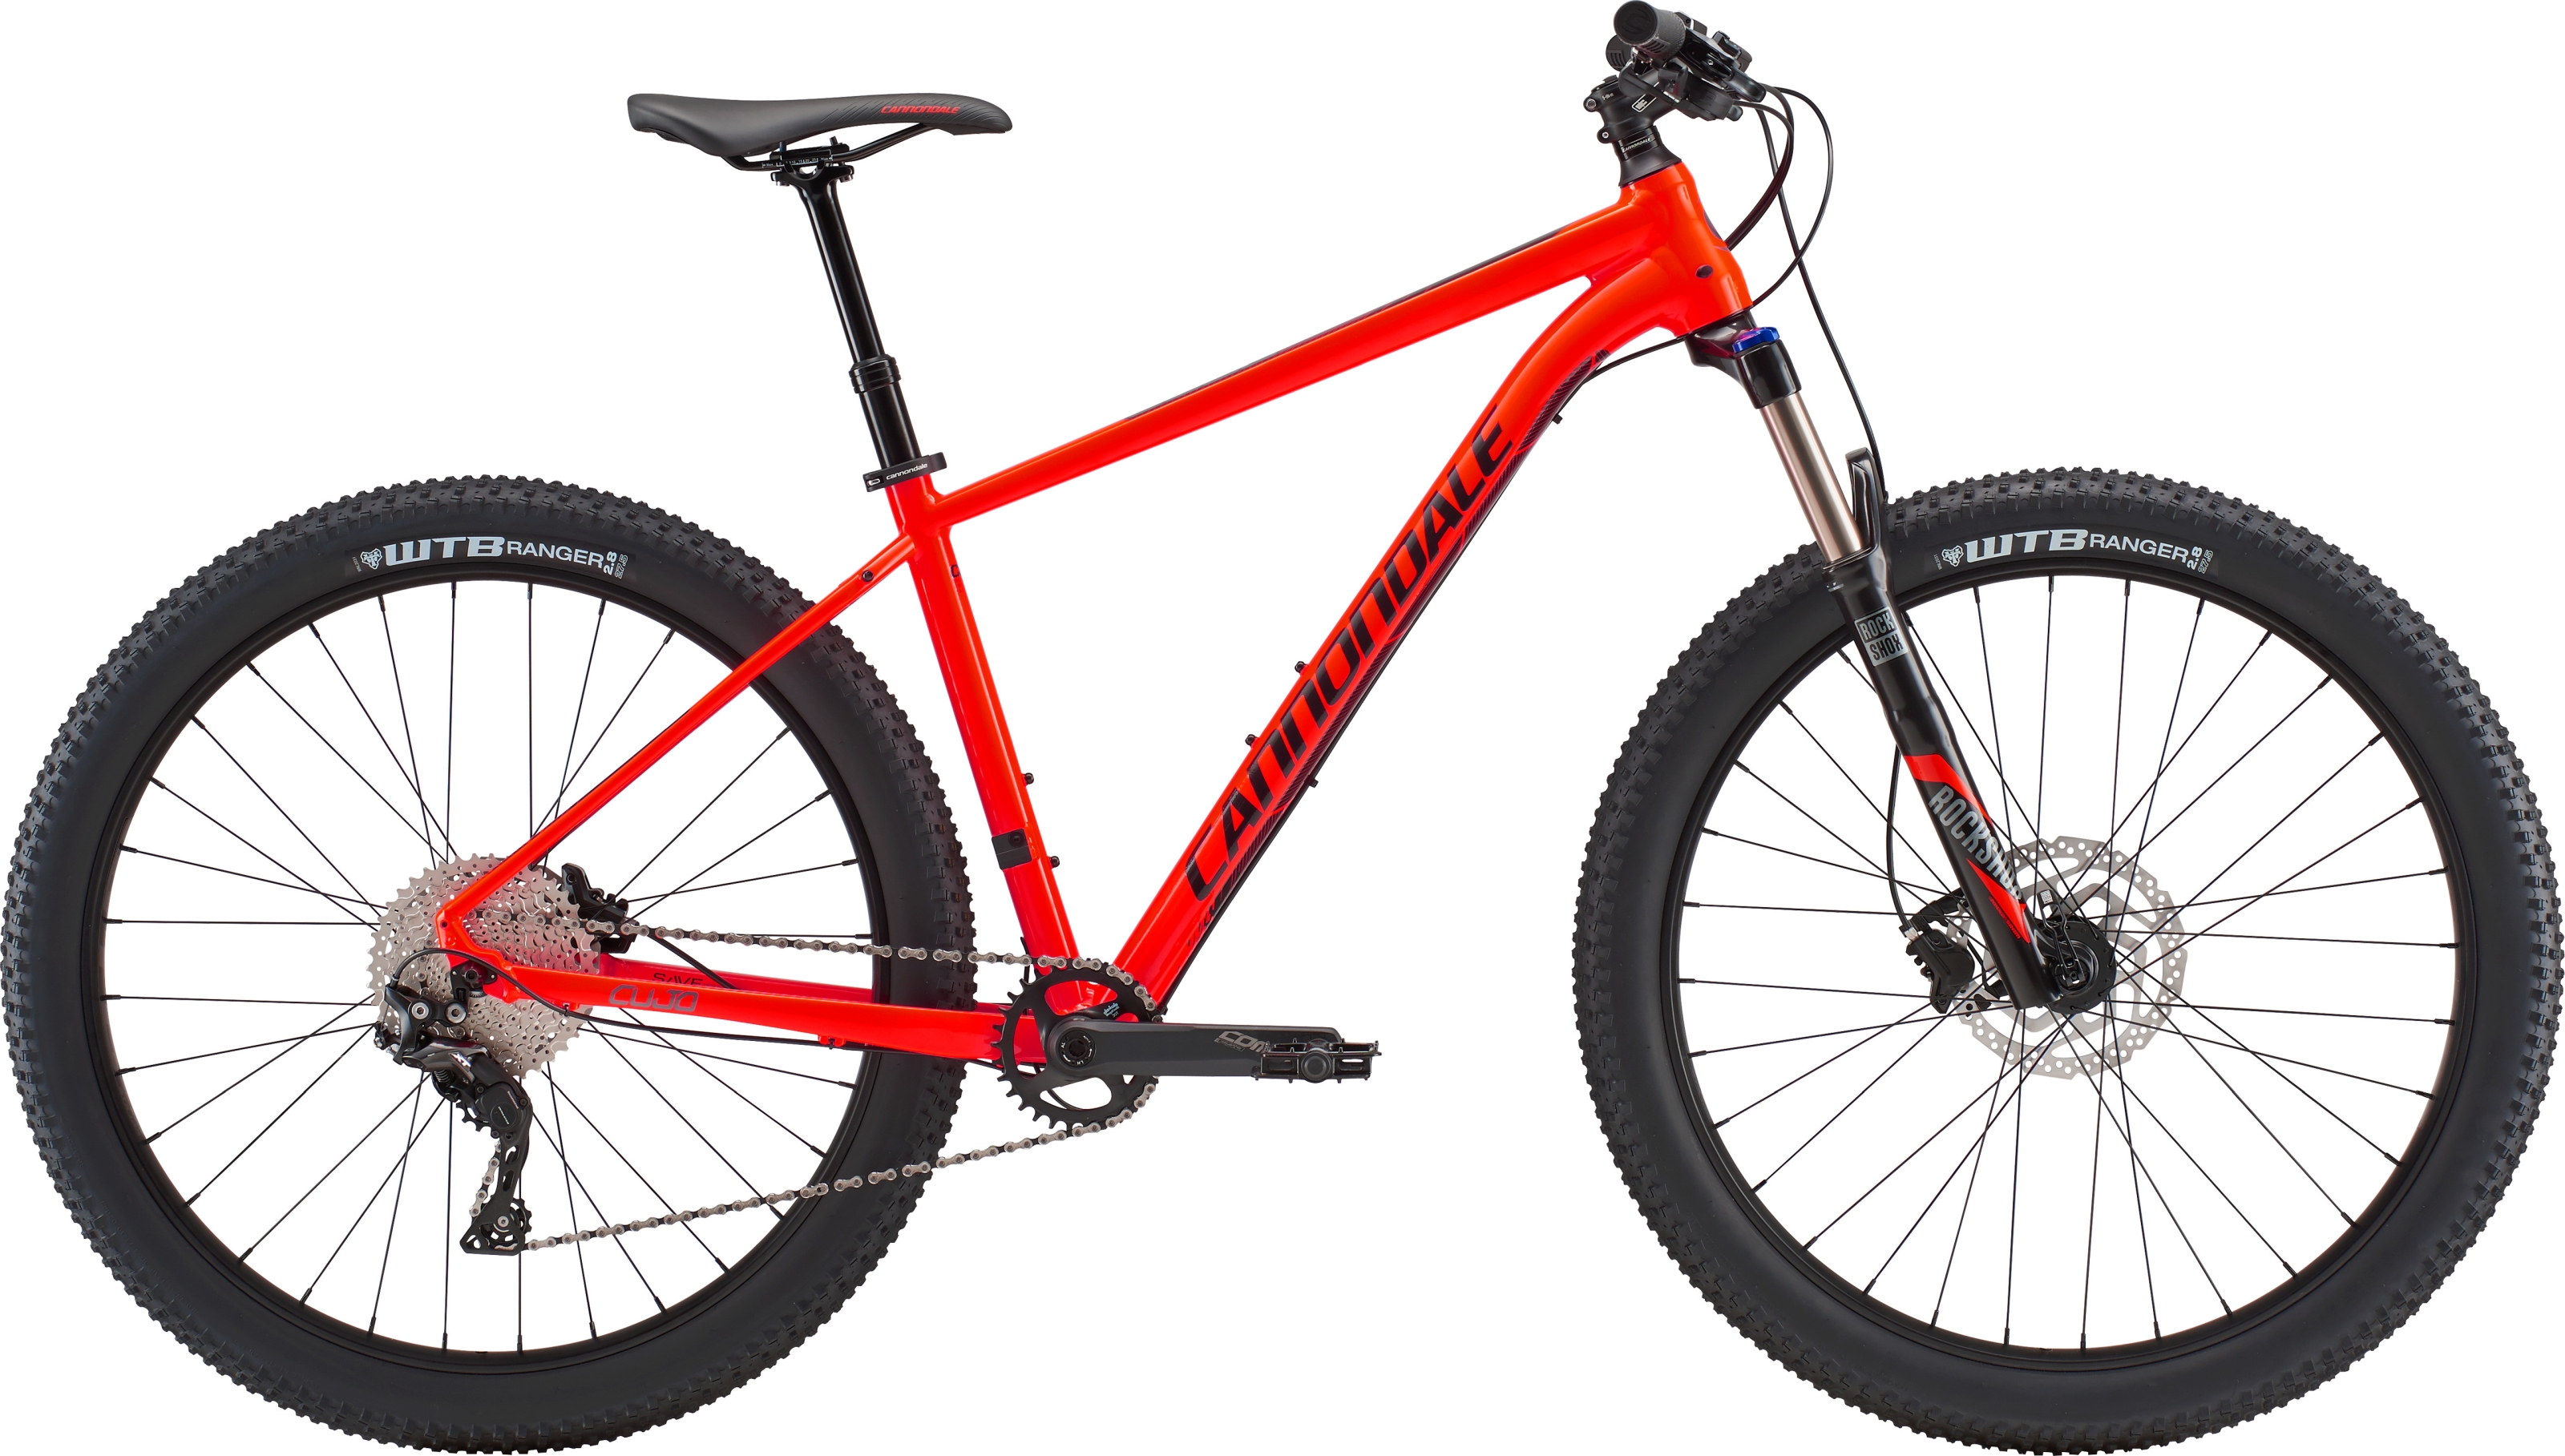 c9a8426bc50 2019 Cannondale Cujo 1 Plus Hardtail Mountain Bike £799.99